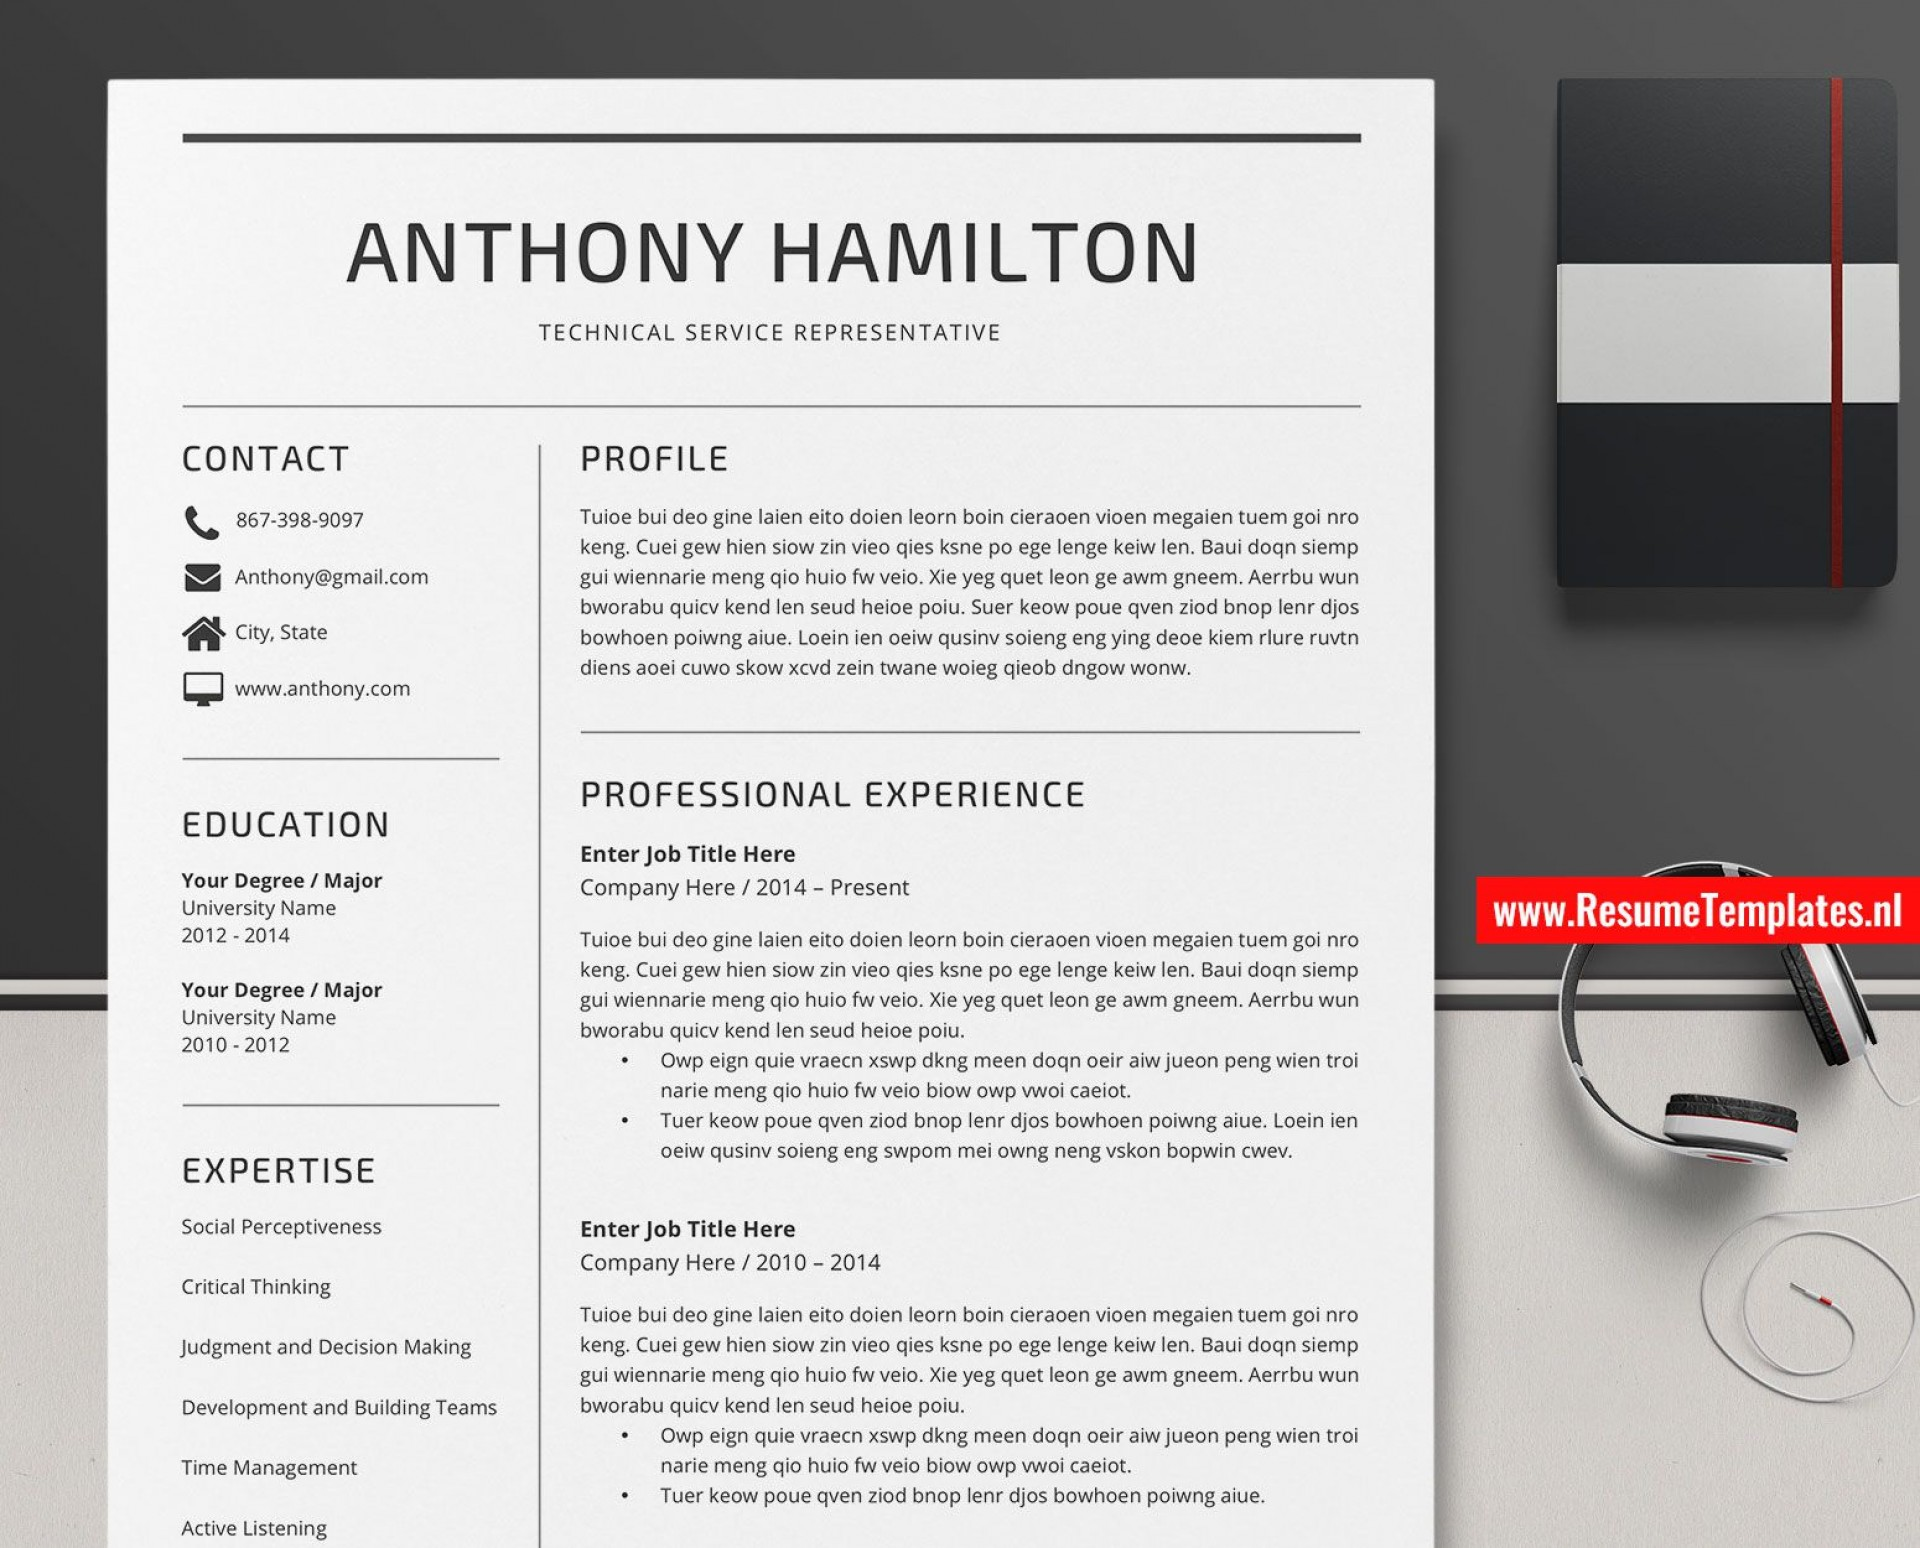 007 Staggering Curriculum Vitae Word Template Inspiration  Templates Download M 2019 Cv Free1920